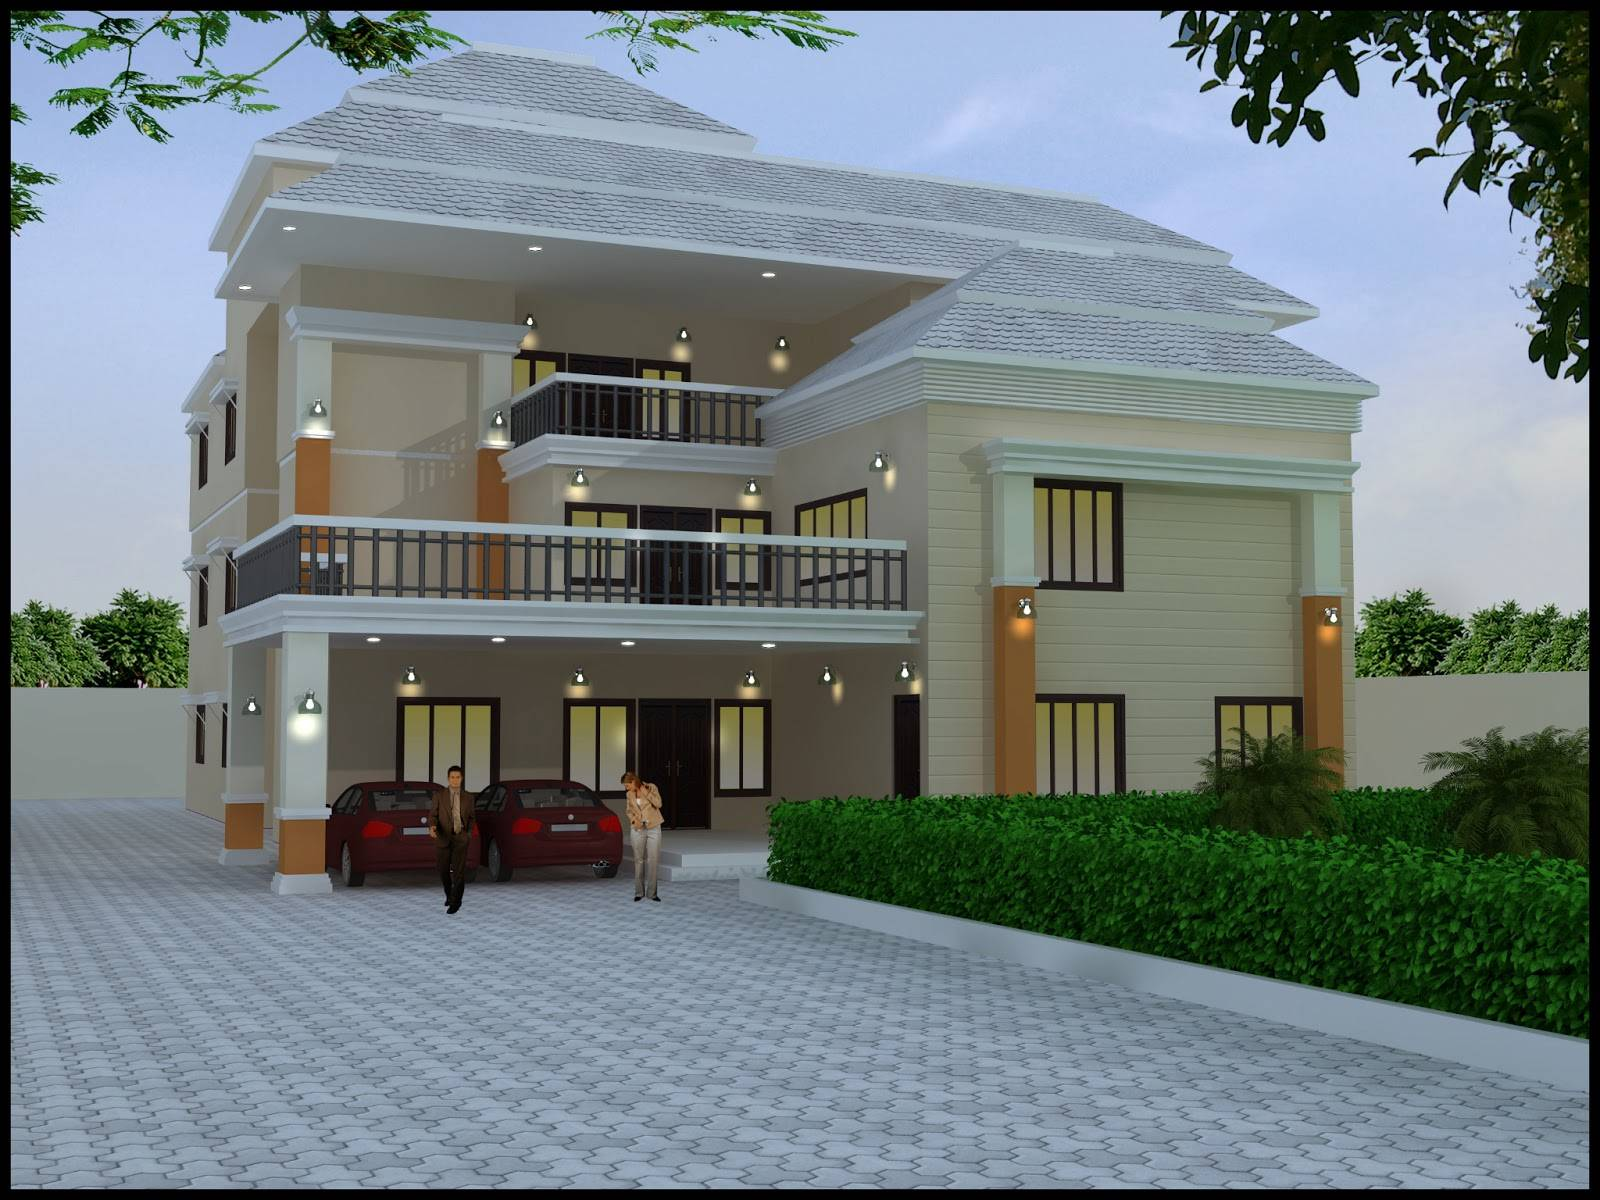 Best Design For Home Ideas Photo Gallery House Plans